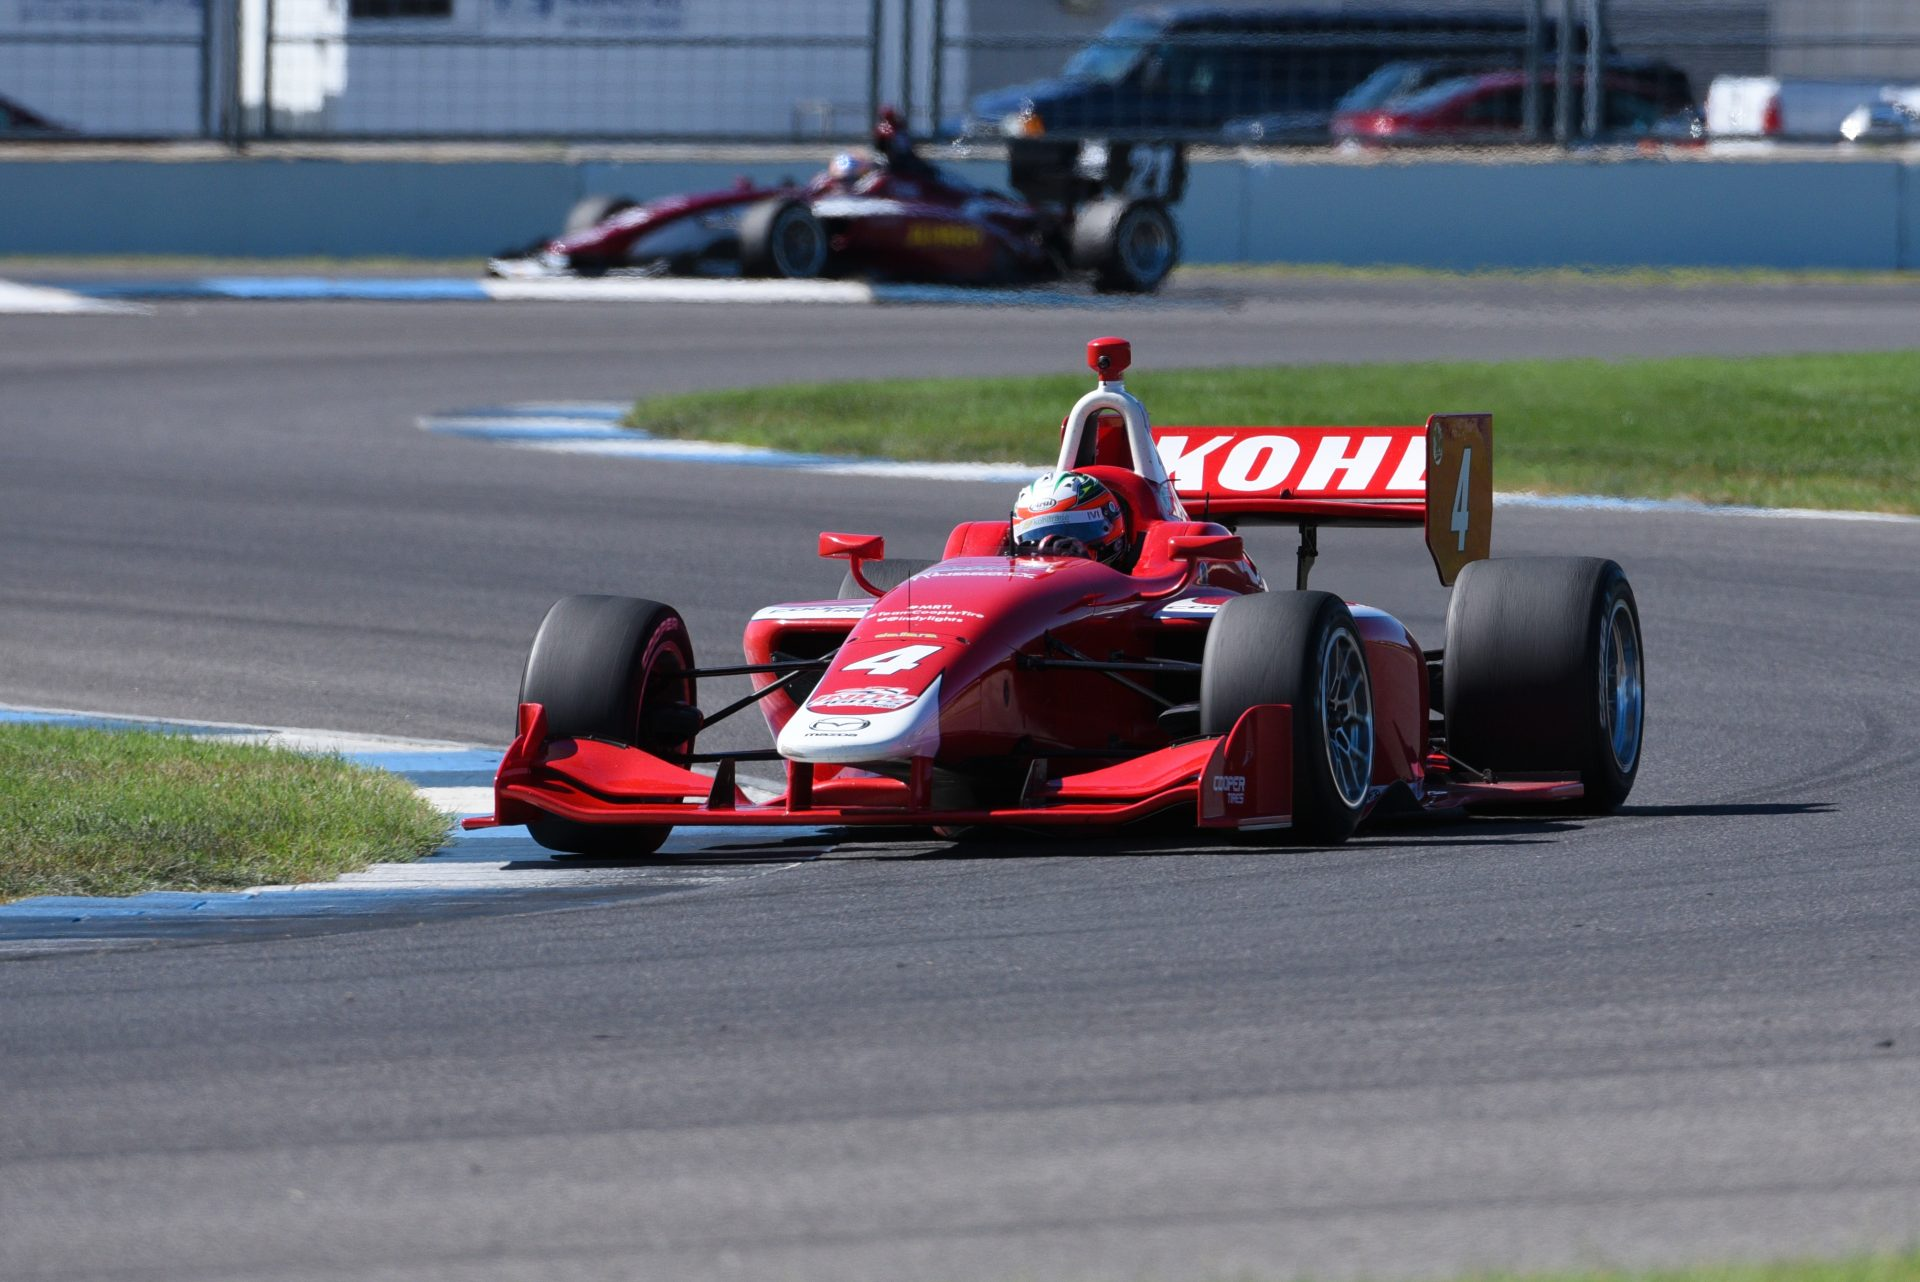 Photo of Indy Lights – Lucas Kohl assina com a Belardi e representará o Brasil na Indy Lights